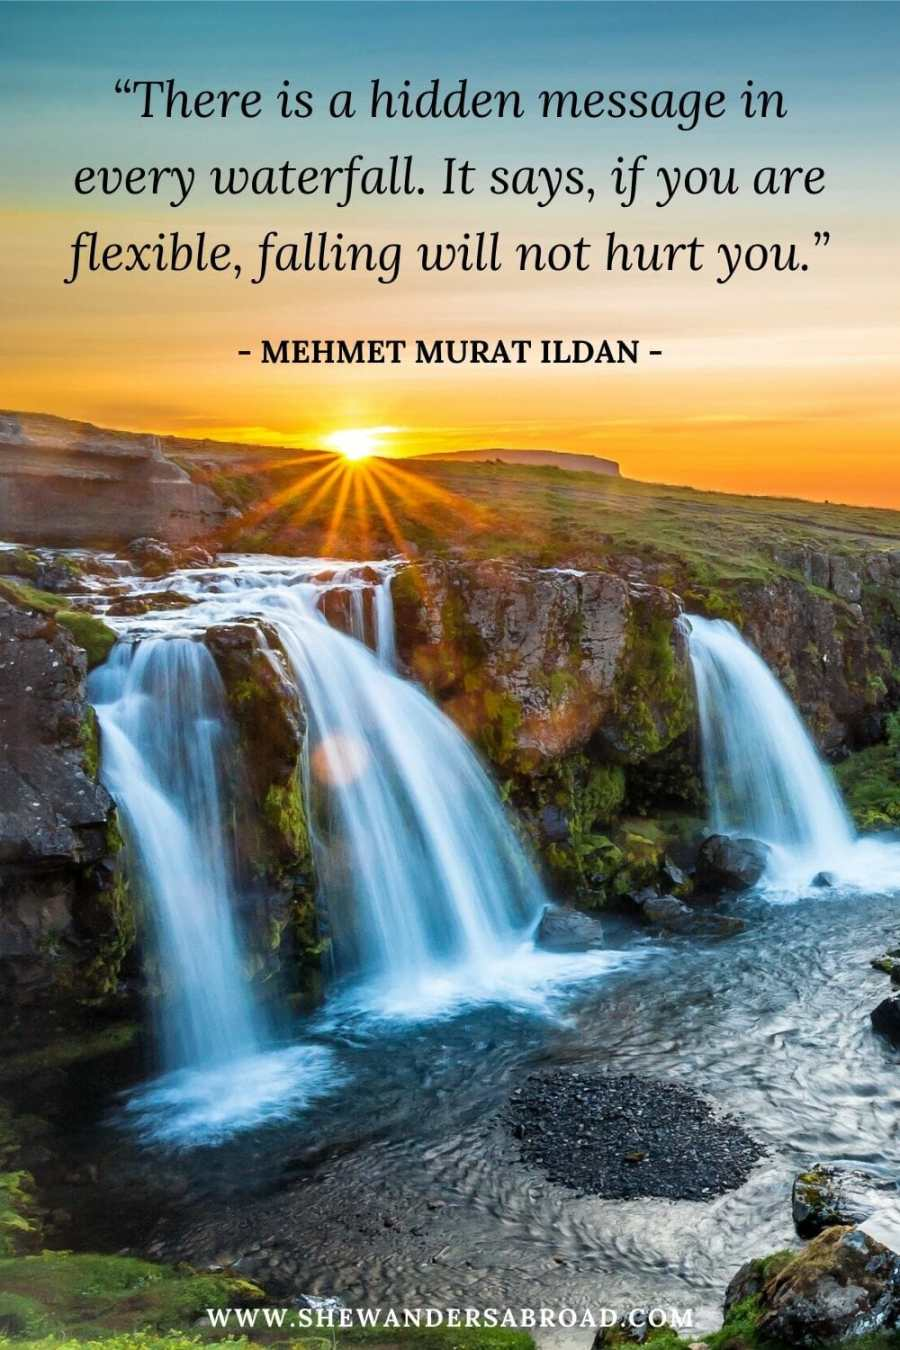 Funny waterfall quotes that will make you laugh